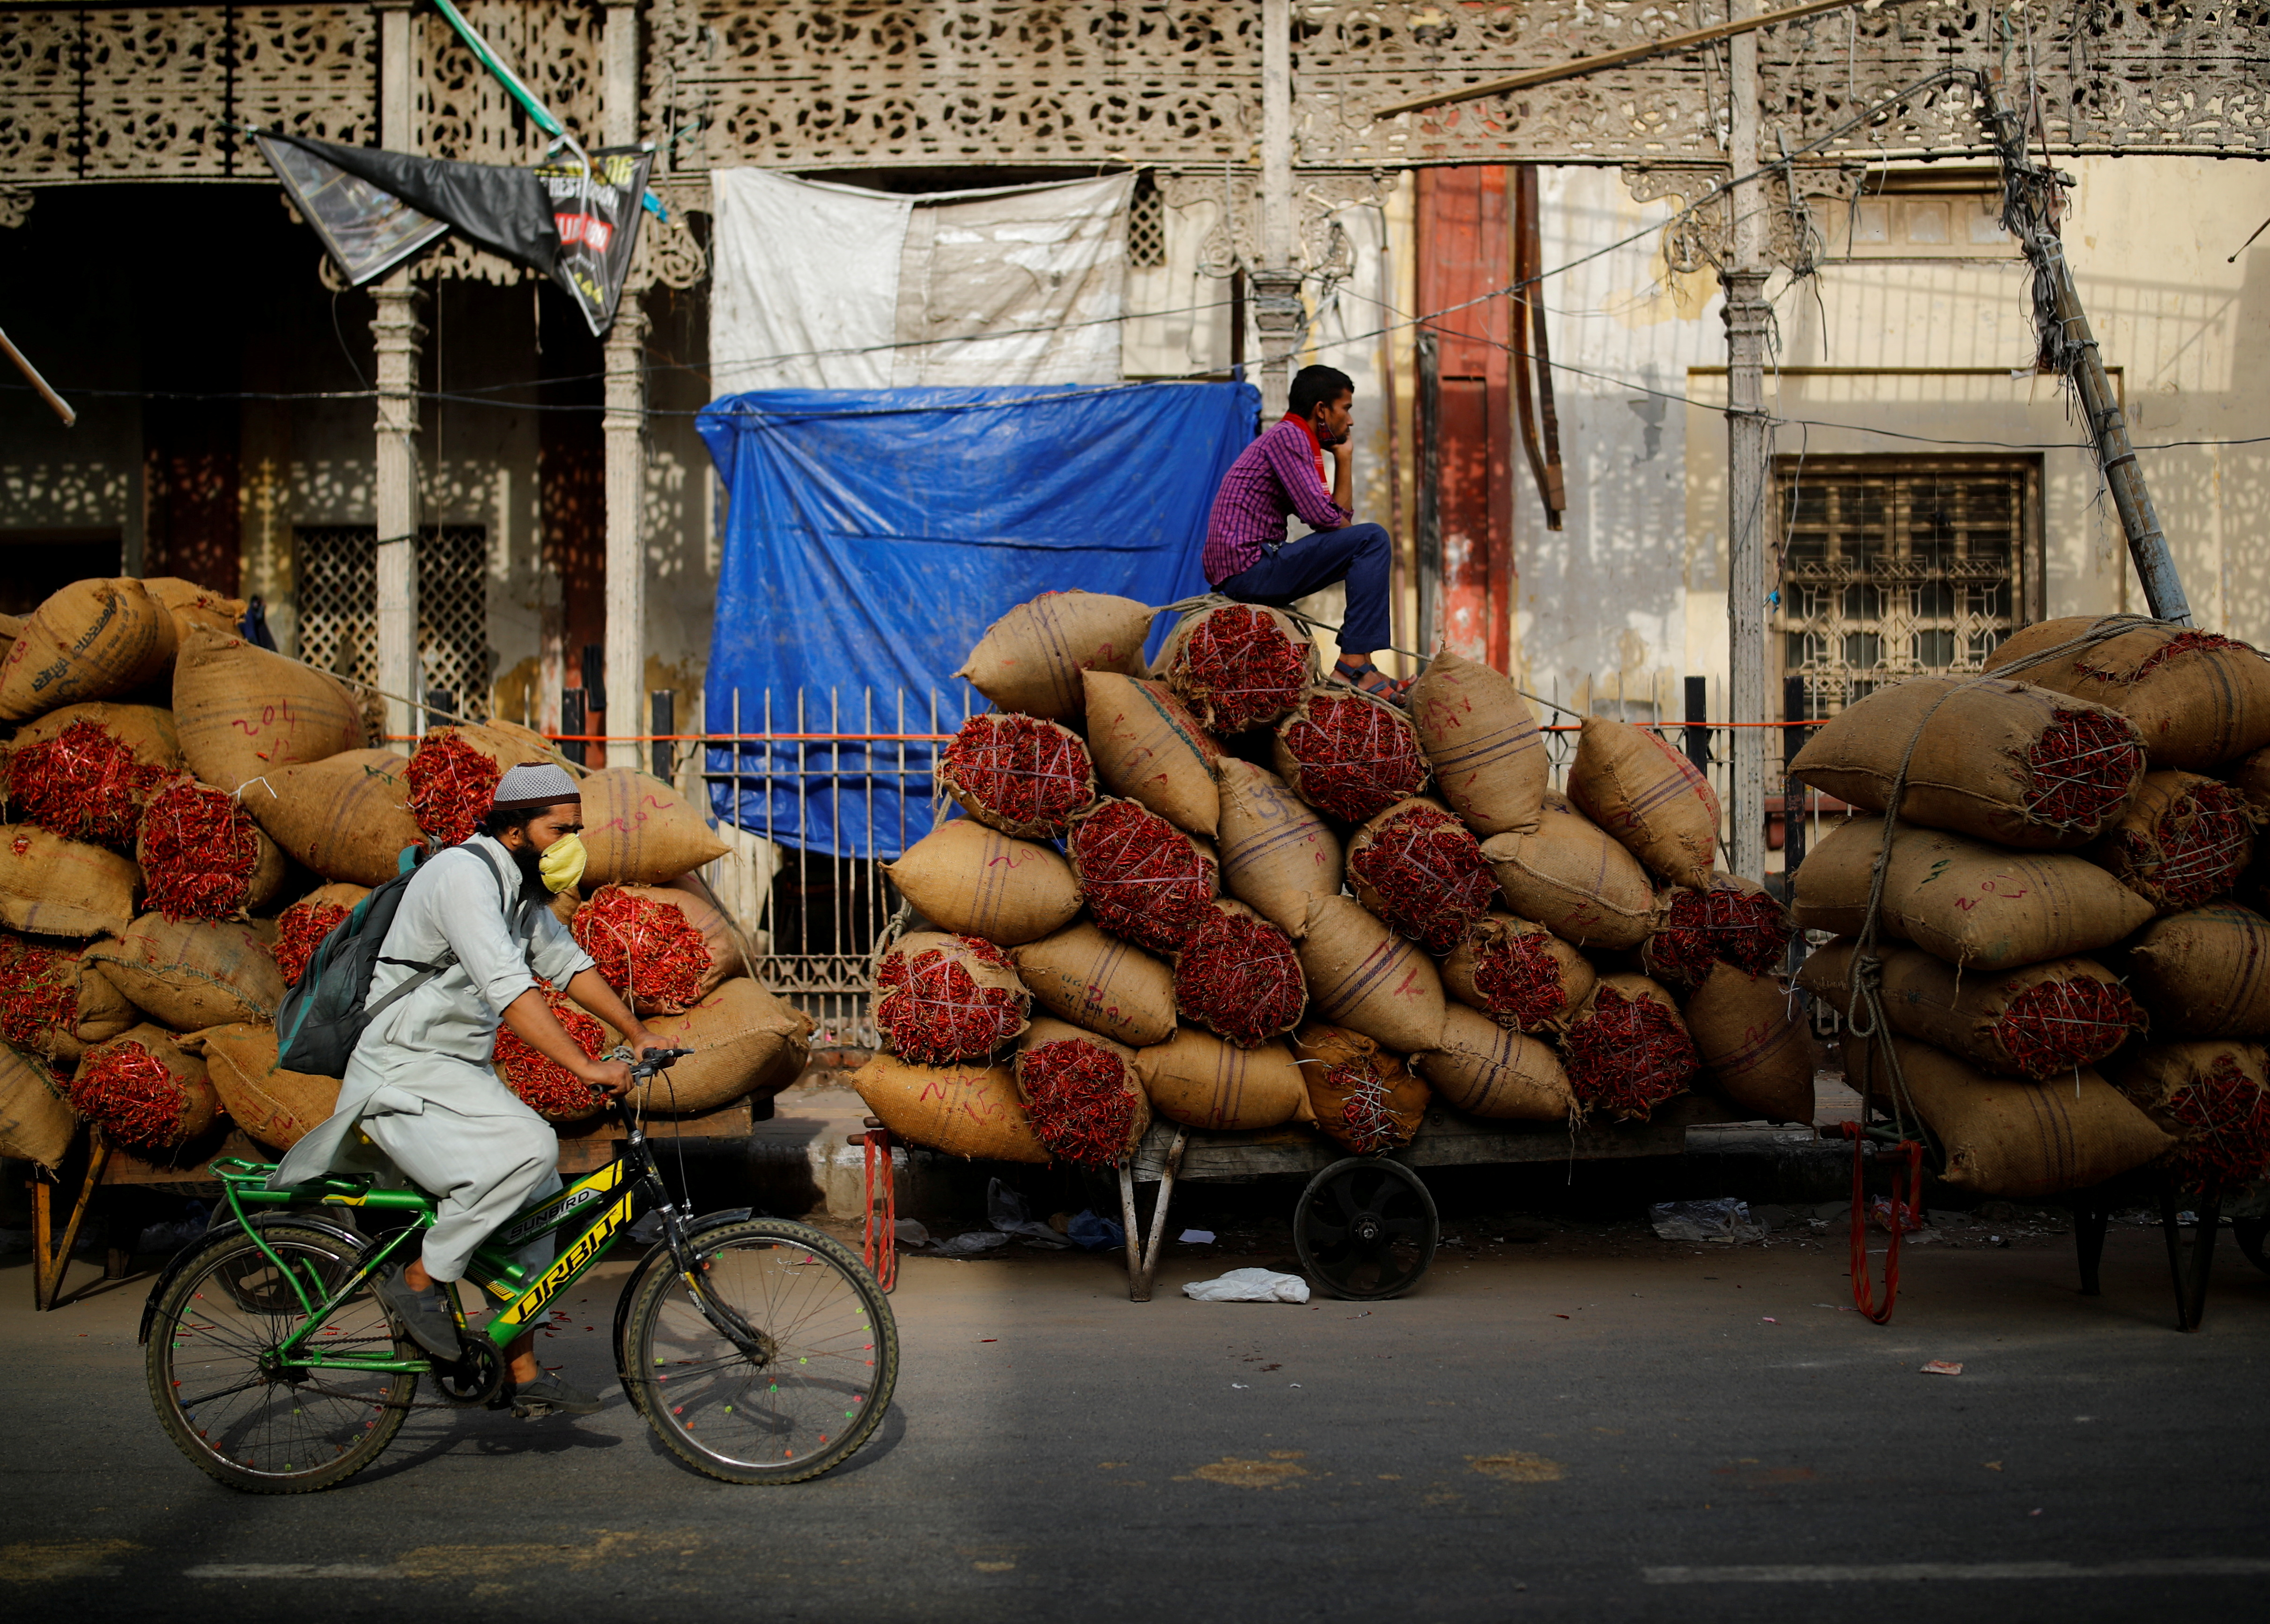 A worker sits on sacks of spices loaded on a cart at a wholesale market after authorities eased lockdown restrictions that were imposed to slow the spread of the coronavirus disease (COVID-19), in the old quarters of Delhi, India, June 8, 2021. REUTERS/Adnan Abidi     TPX IMAGES OF THE DAY